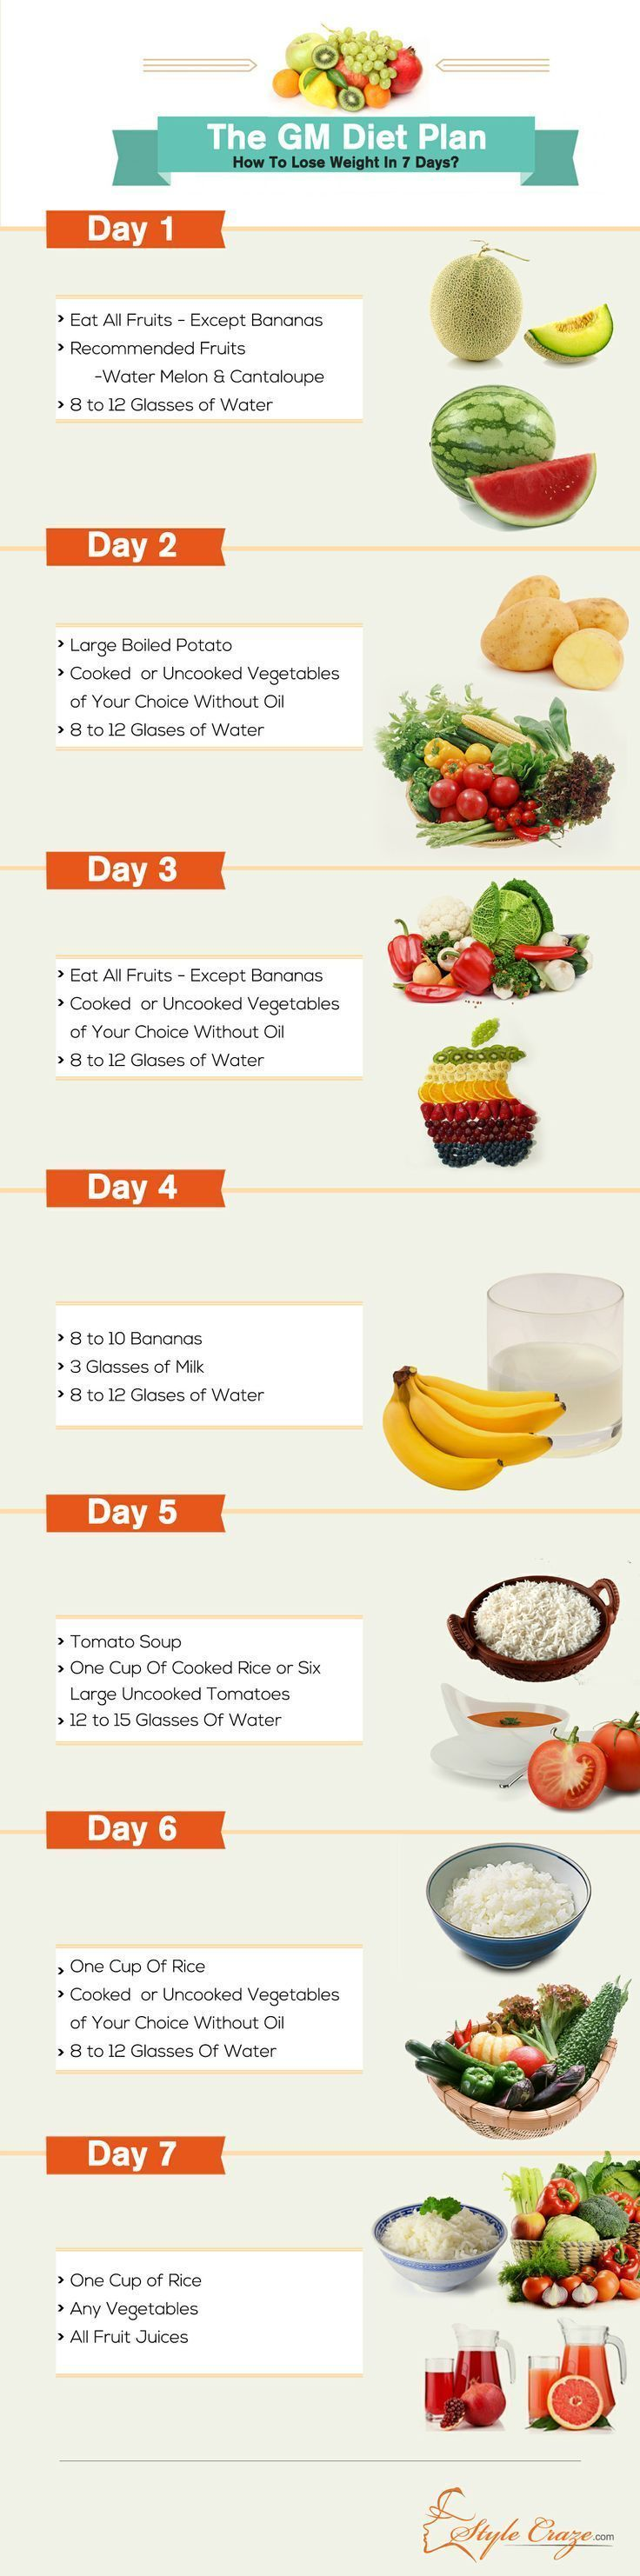 Weight loss protein shake ideas image 4